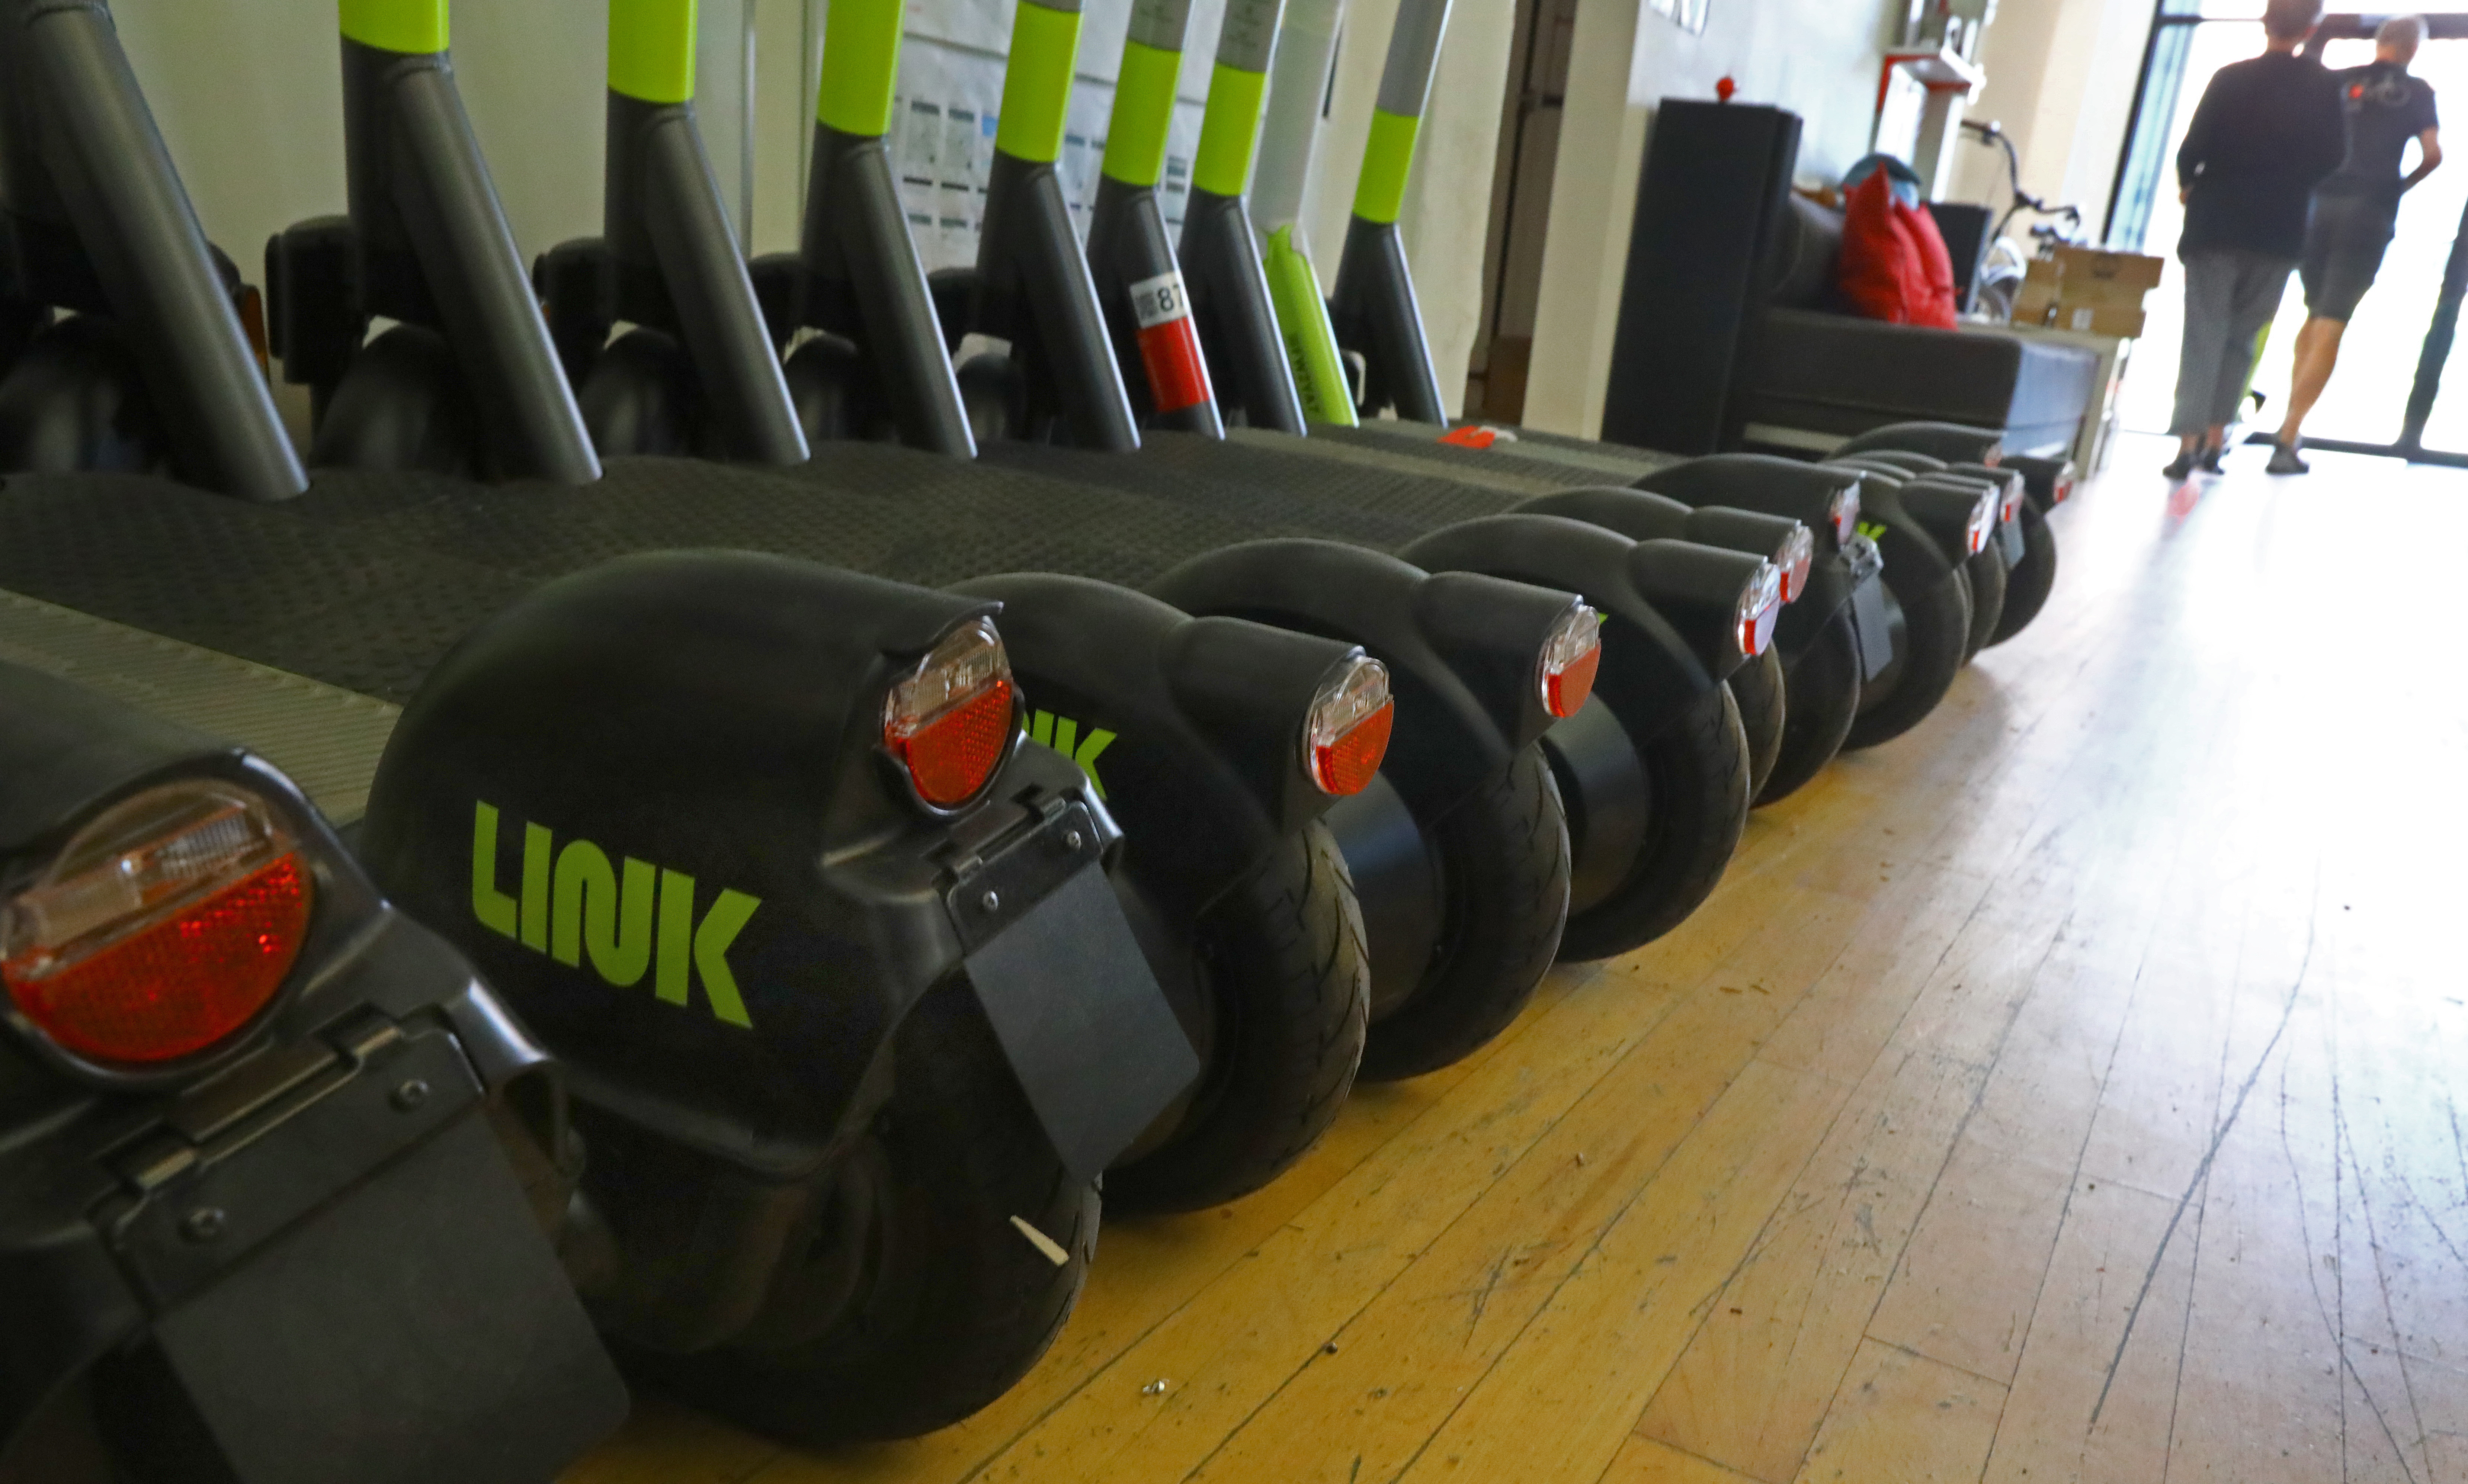 LINK scooters parked in the company's multiple-use space.